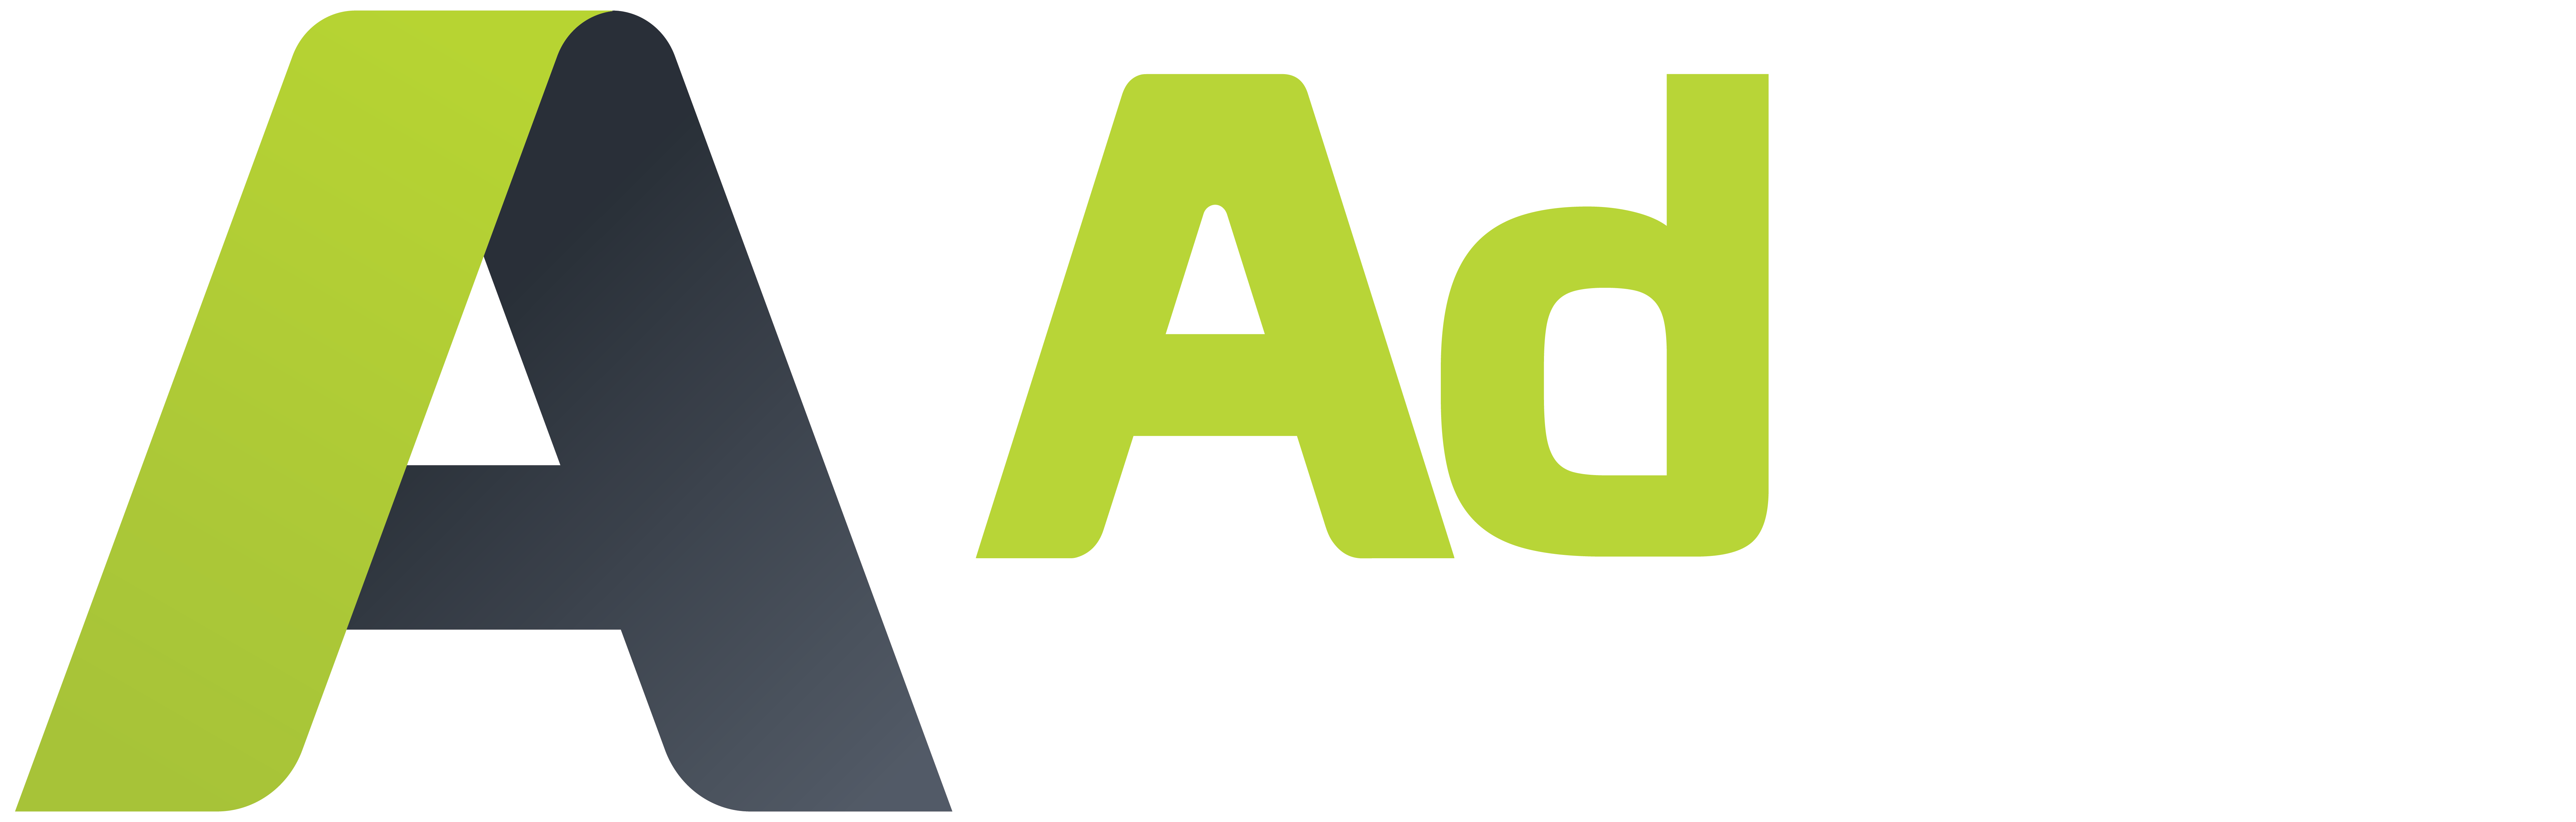 Adlab Media Advertising – Web Design, Marketing & Media Solutions